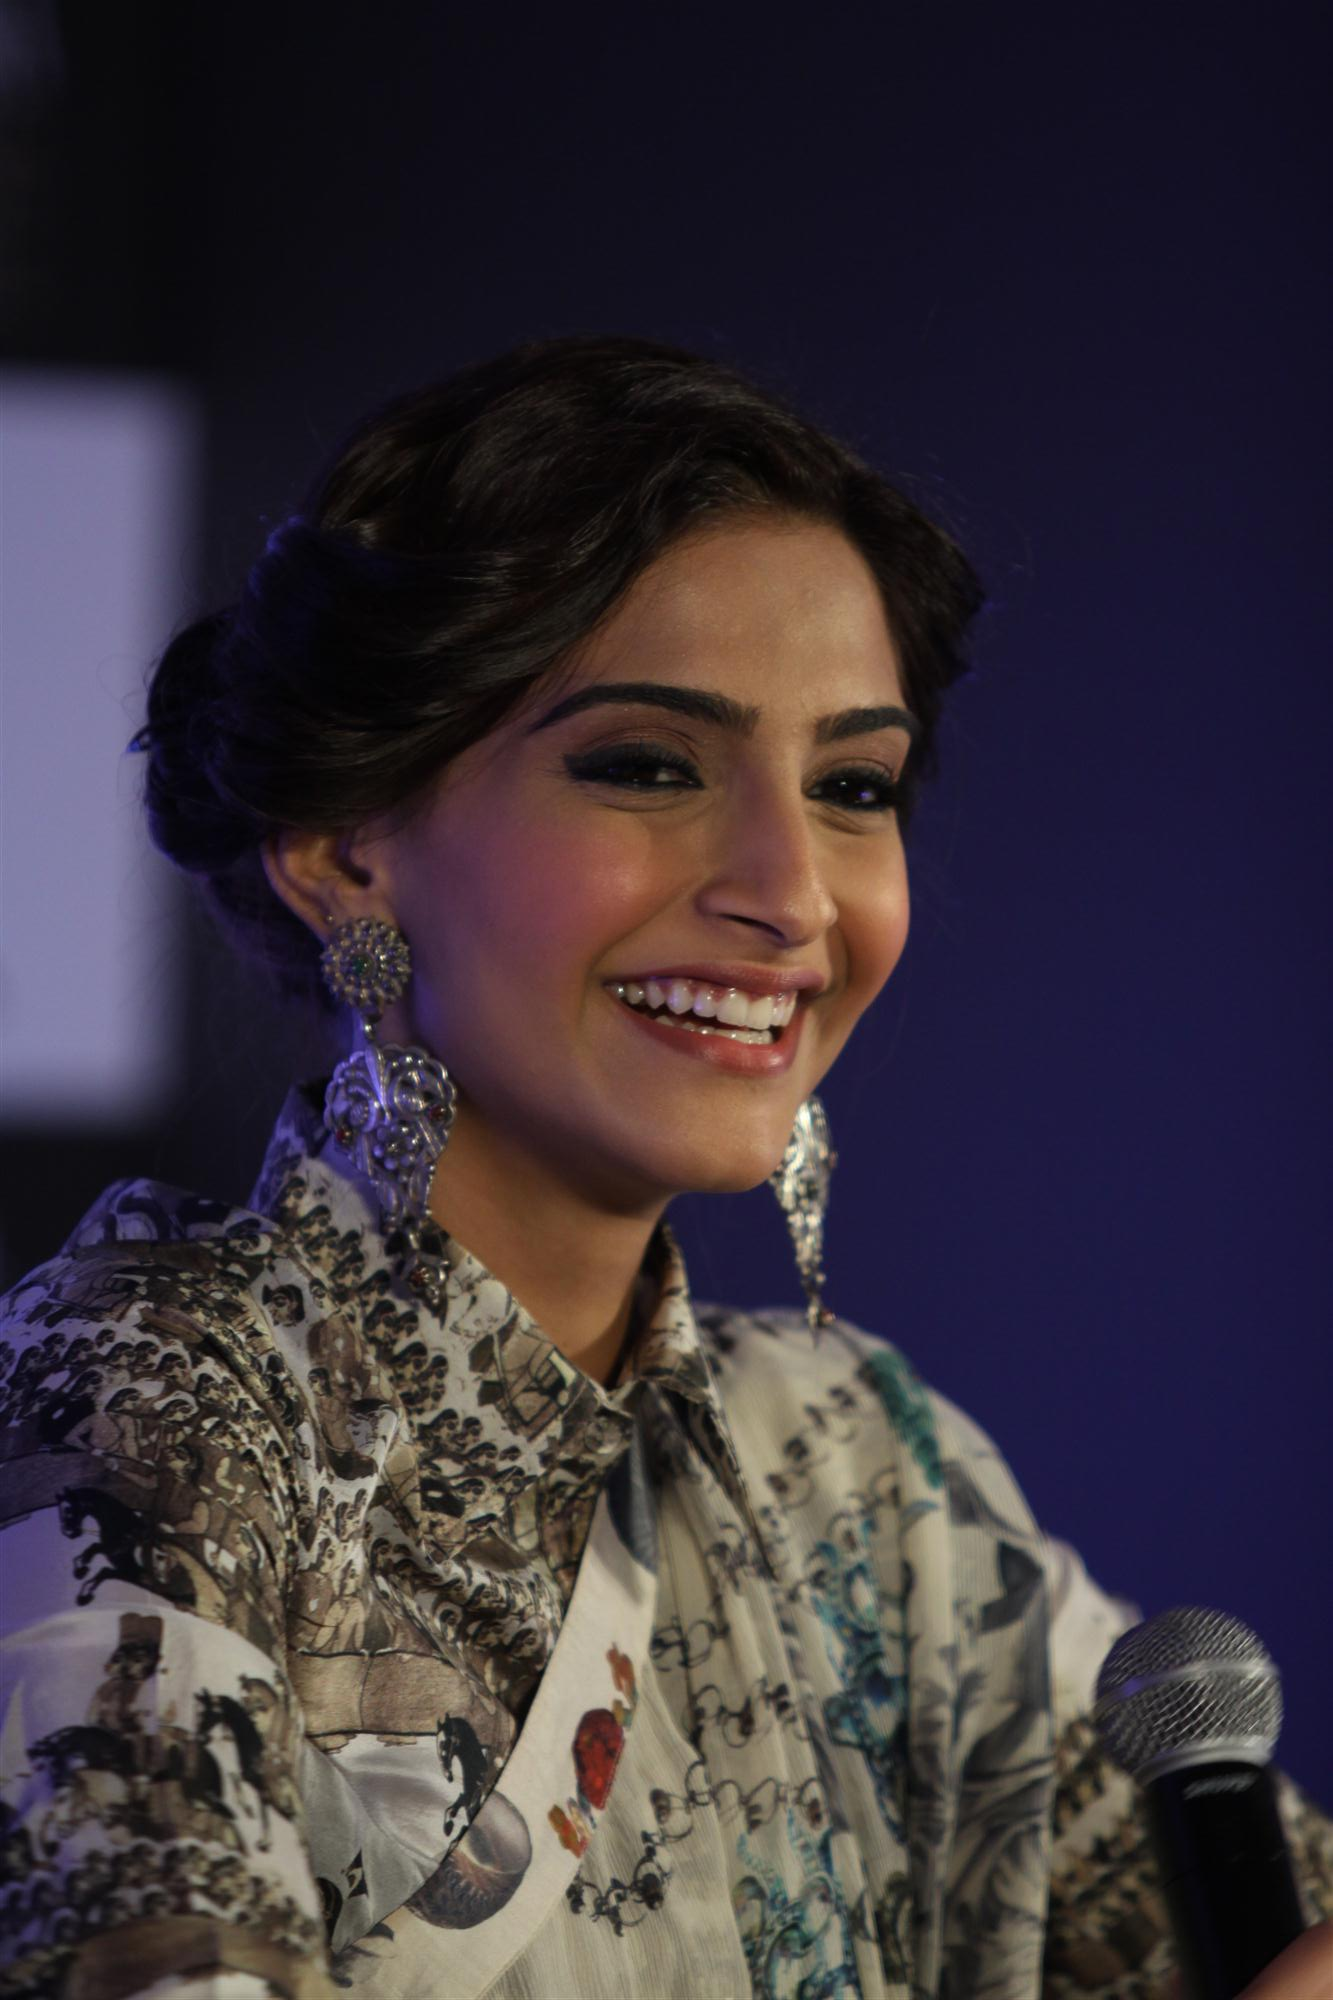 Sonam-Kapoor in fancy earrings